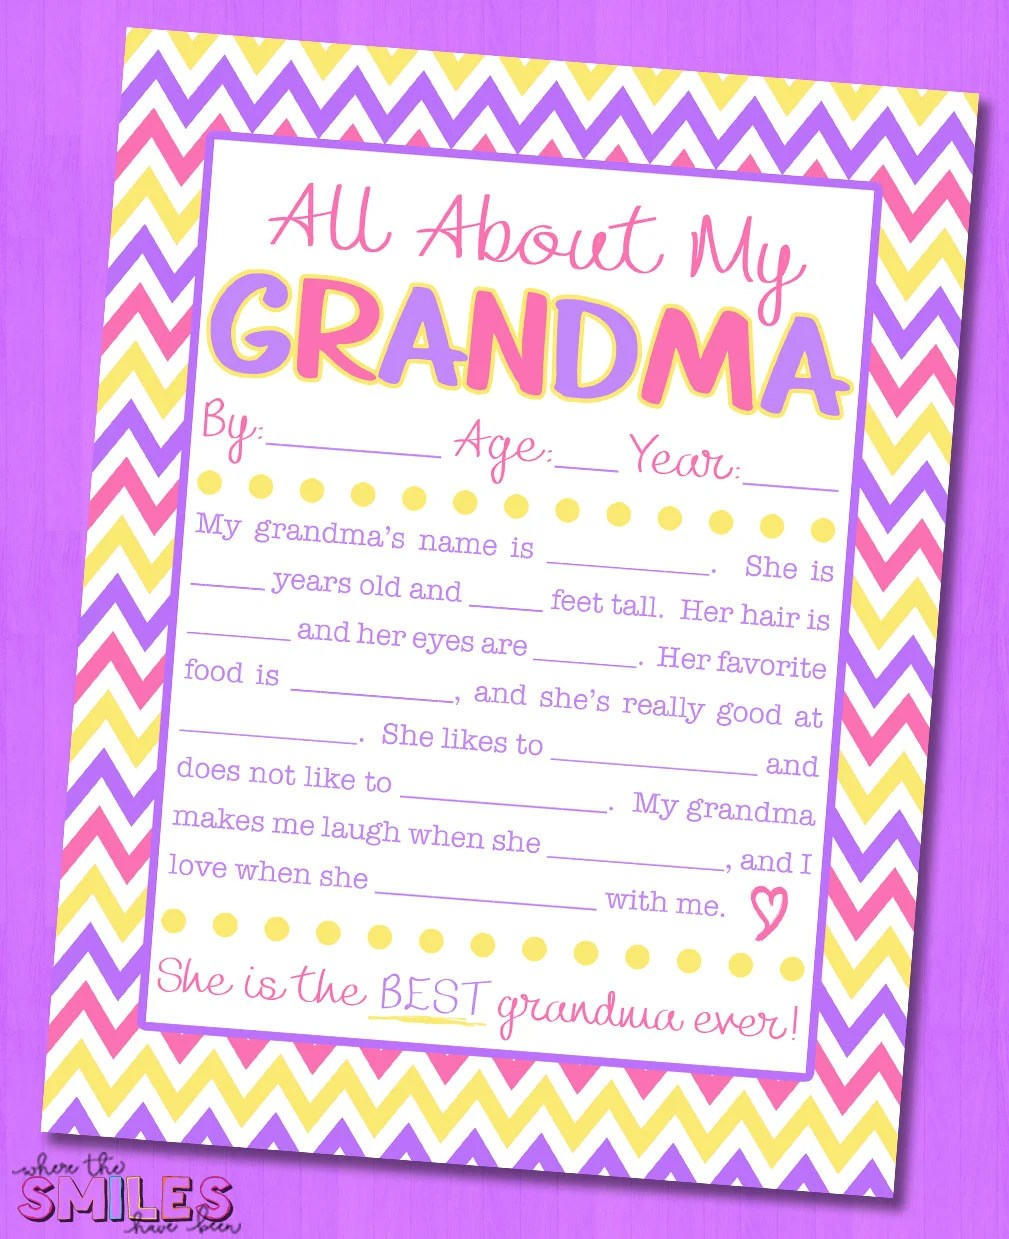 image about All About My Grandma Printable referred to as All Above My Grandma Job interview with No cost Printable 8